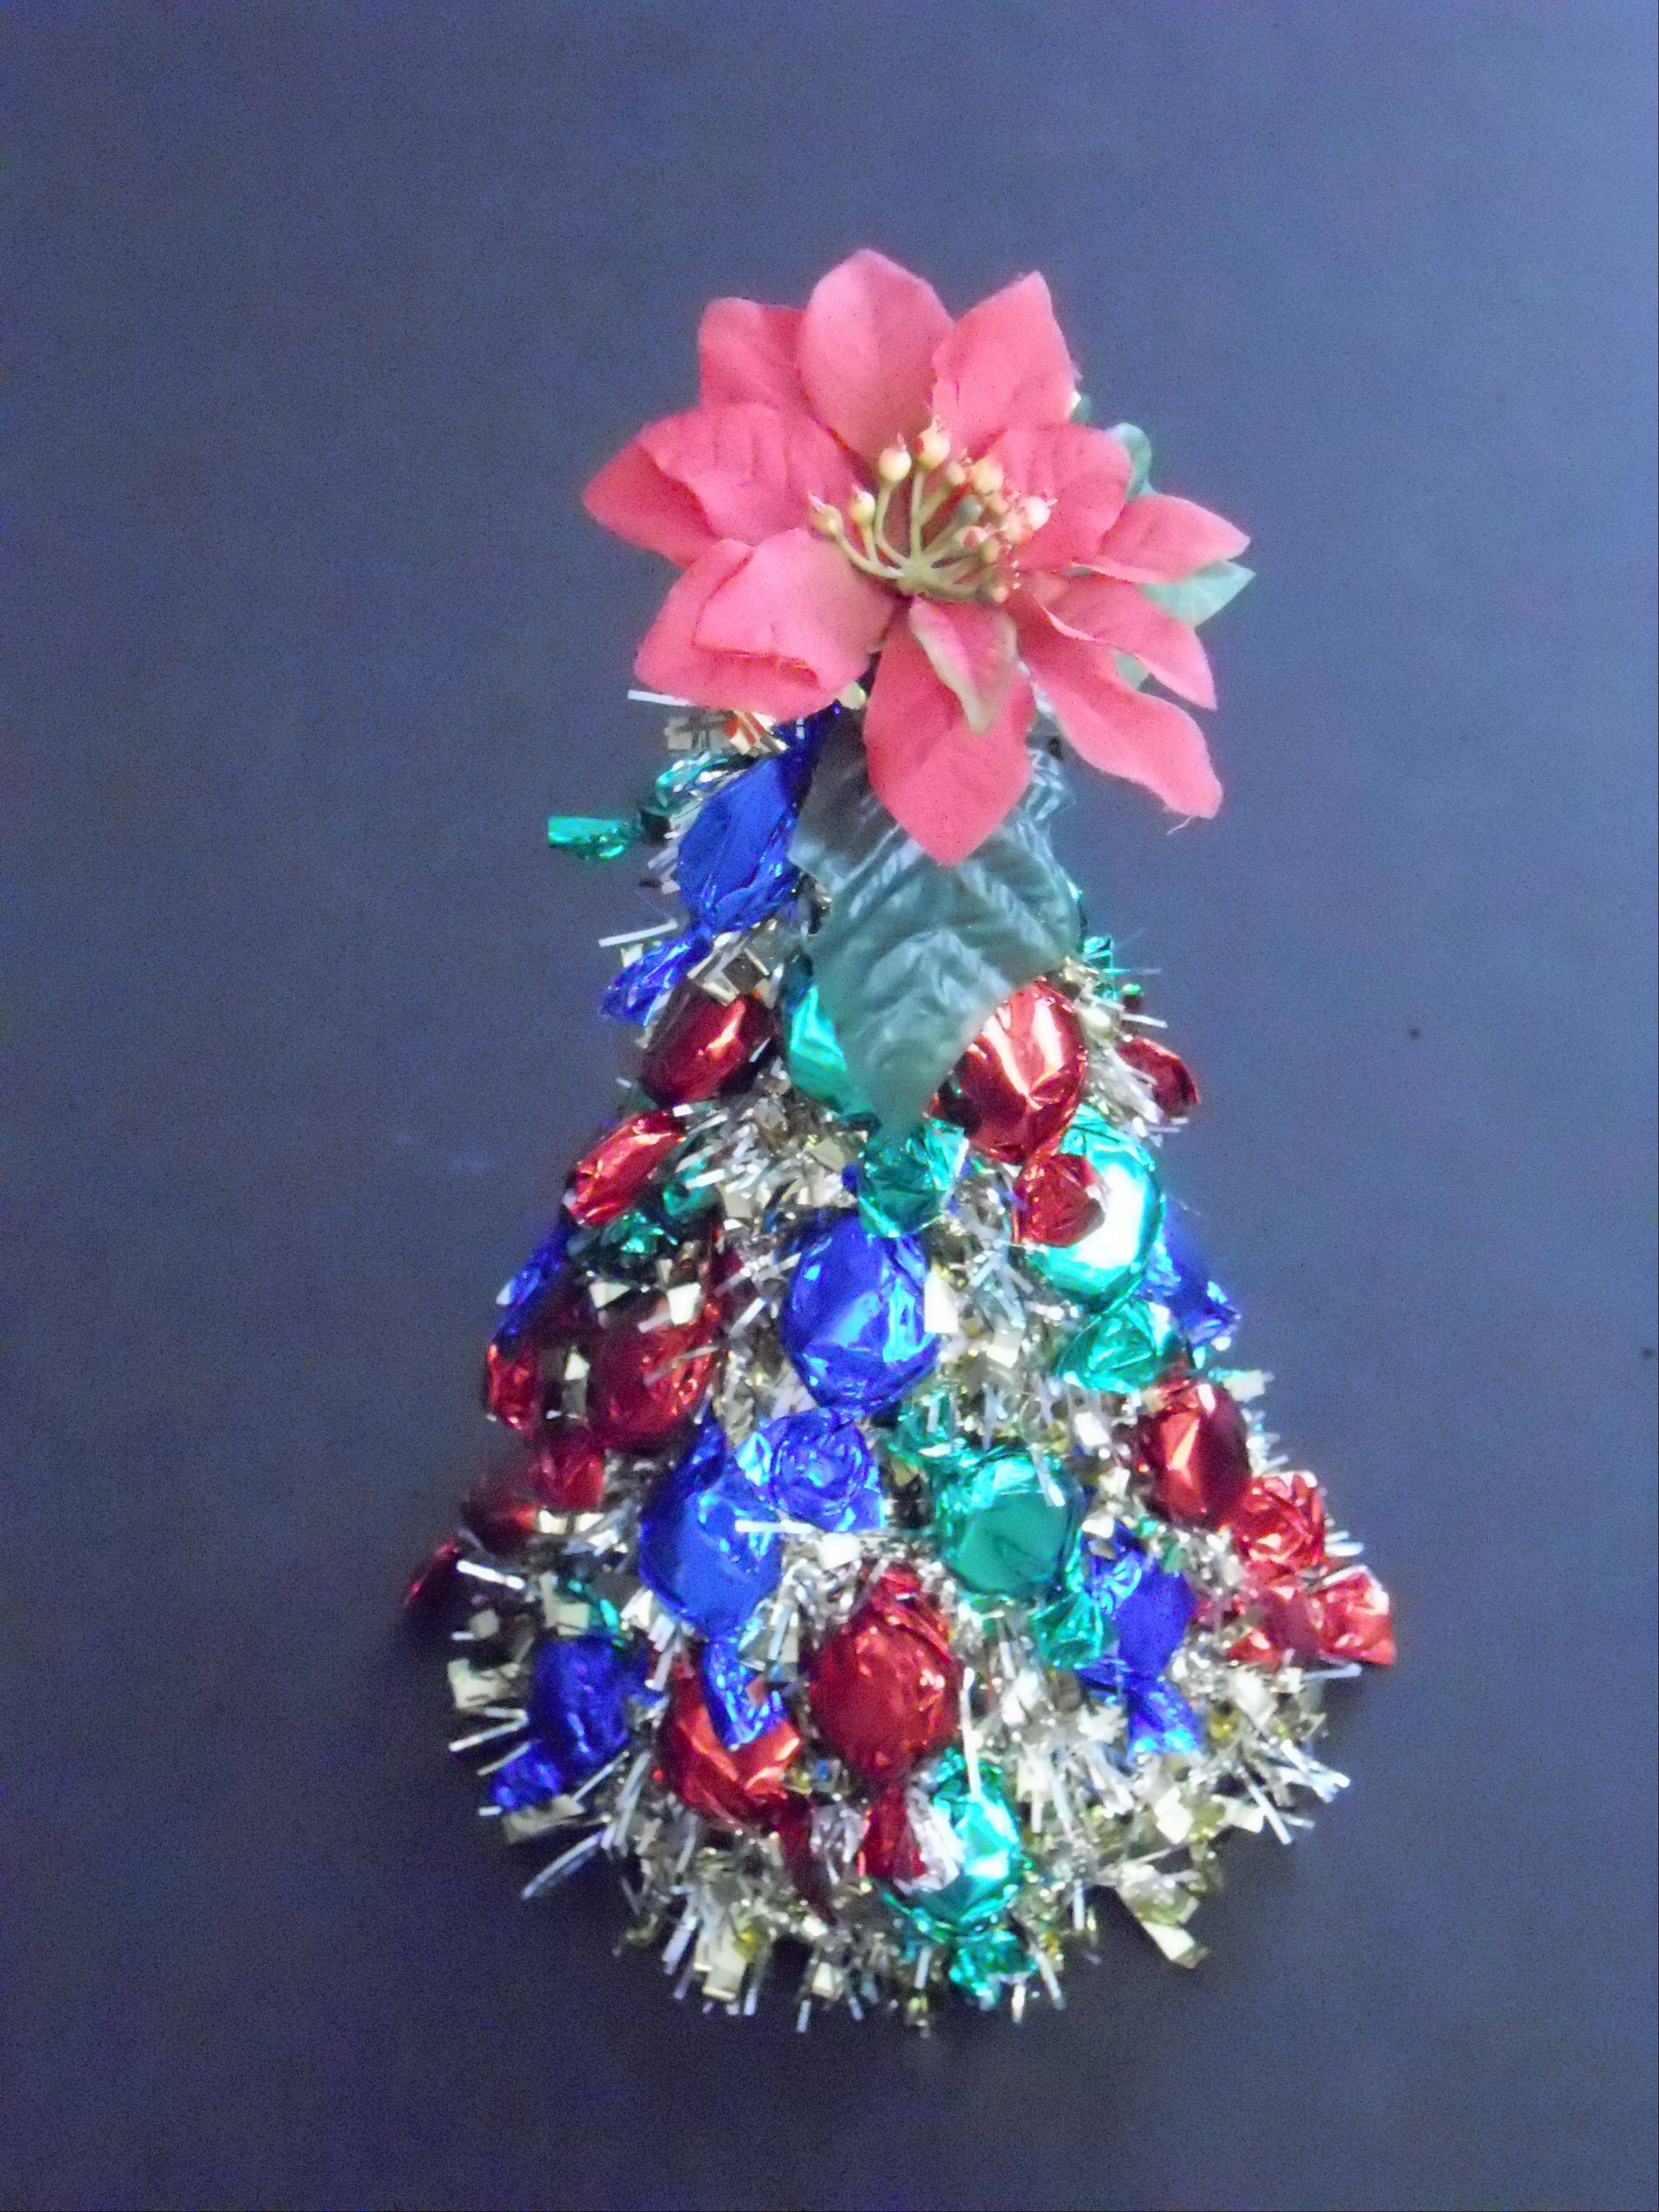 Glittery, foil wrapped candies embellish Carla Weeks shimmering edible Christmas tree.